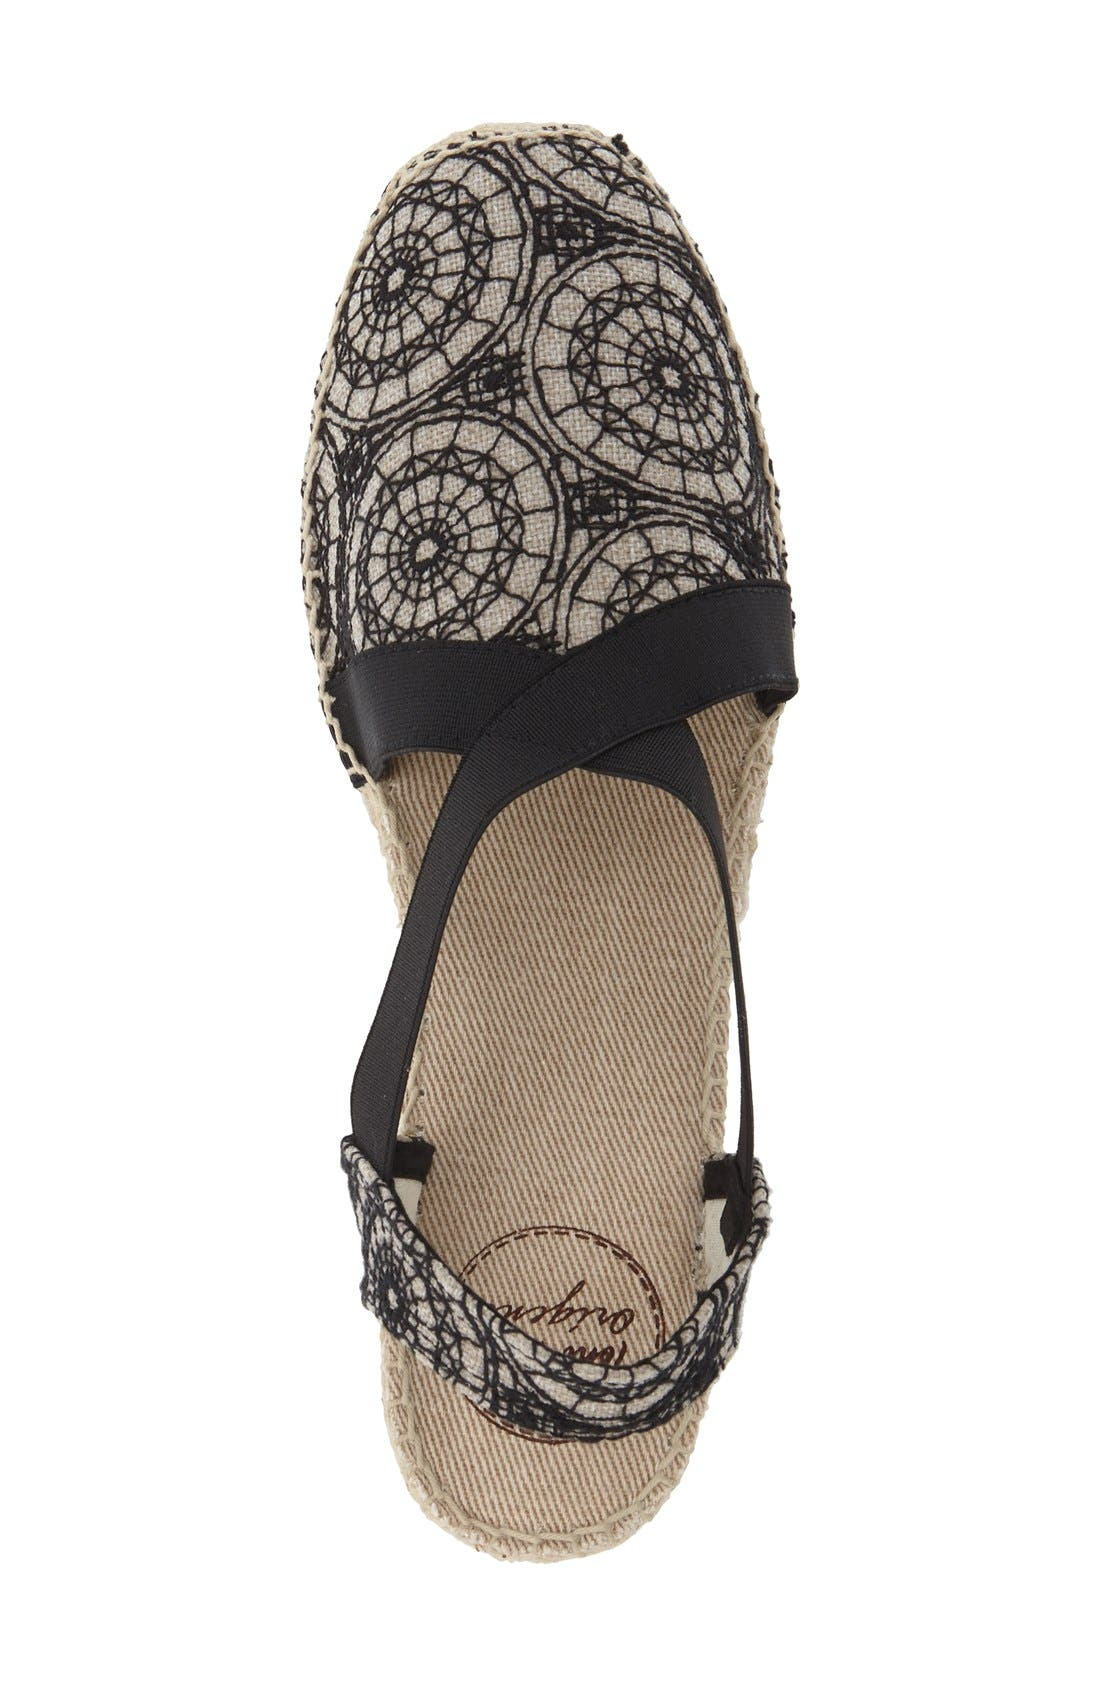 'Vera' Slingback Espadrille Sandal,                             Alternate thumbnail 3, color,                             001